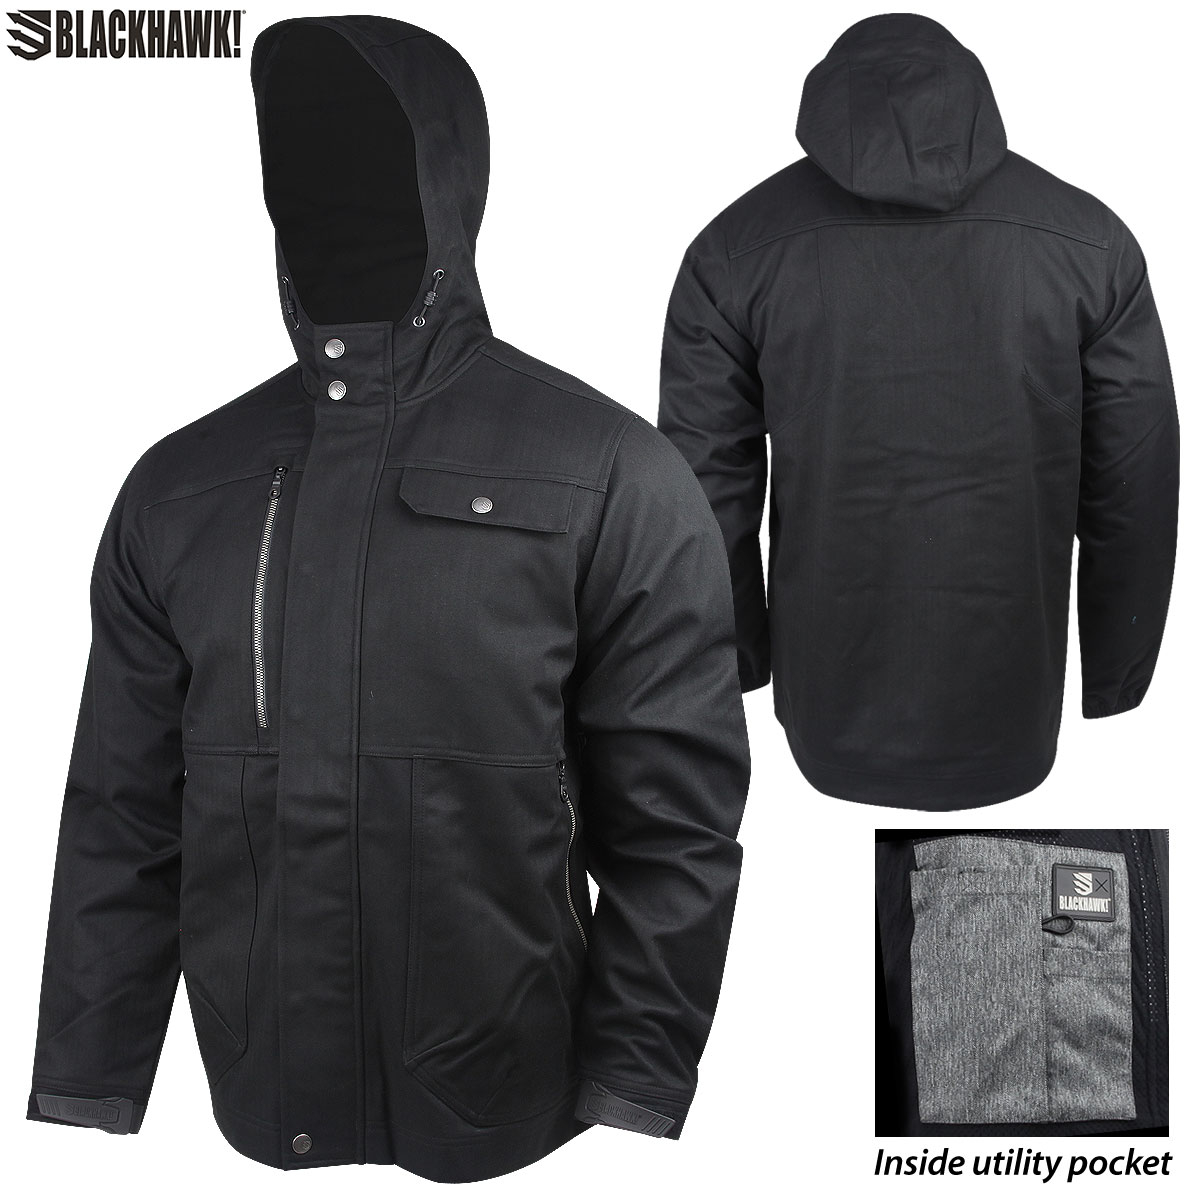 Blackhawk Derecho Soft Shell Jacket XL Black